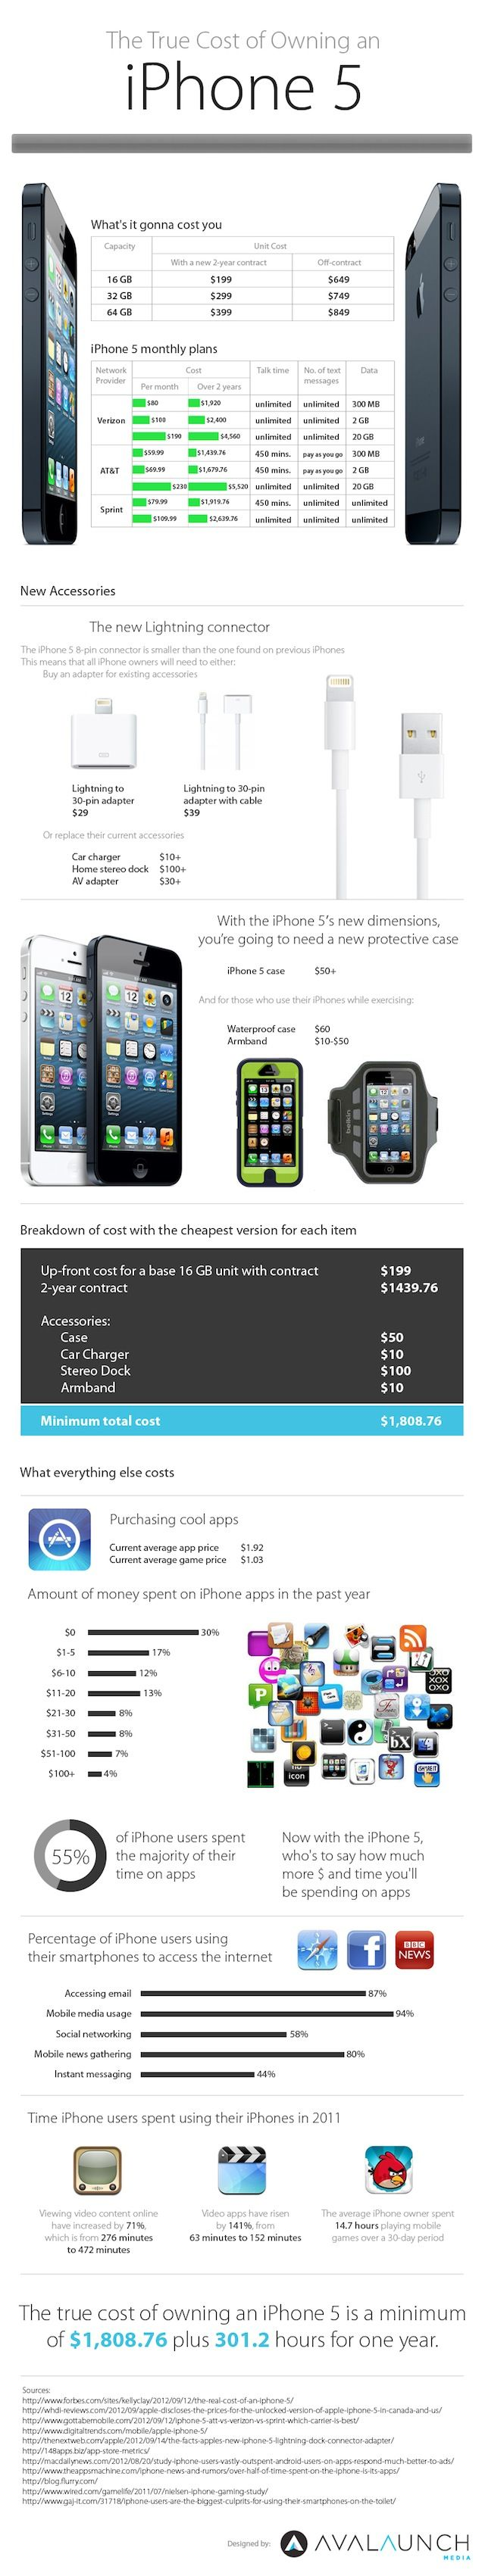 The iPhone 5 Really Costs You $1800. Minimum.